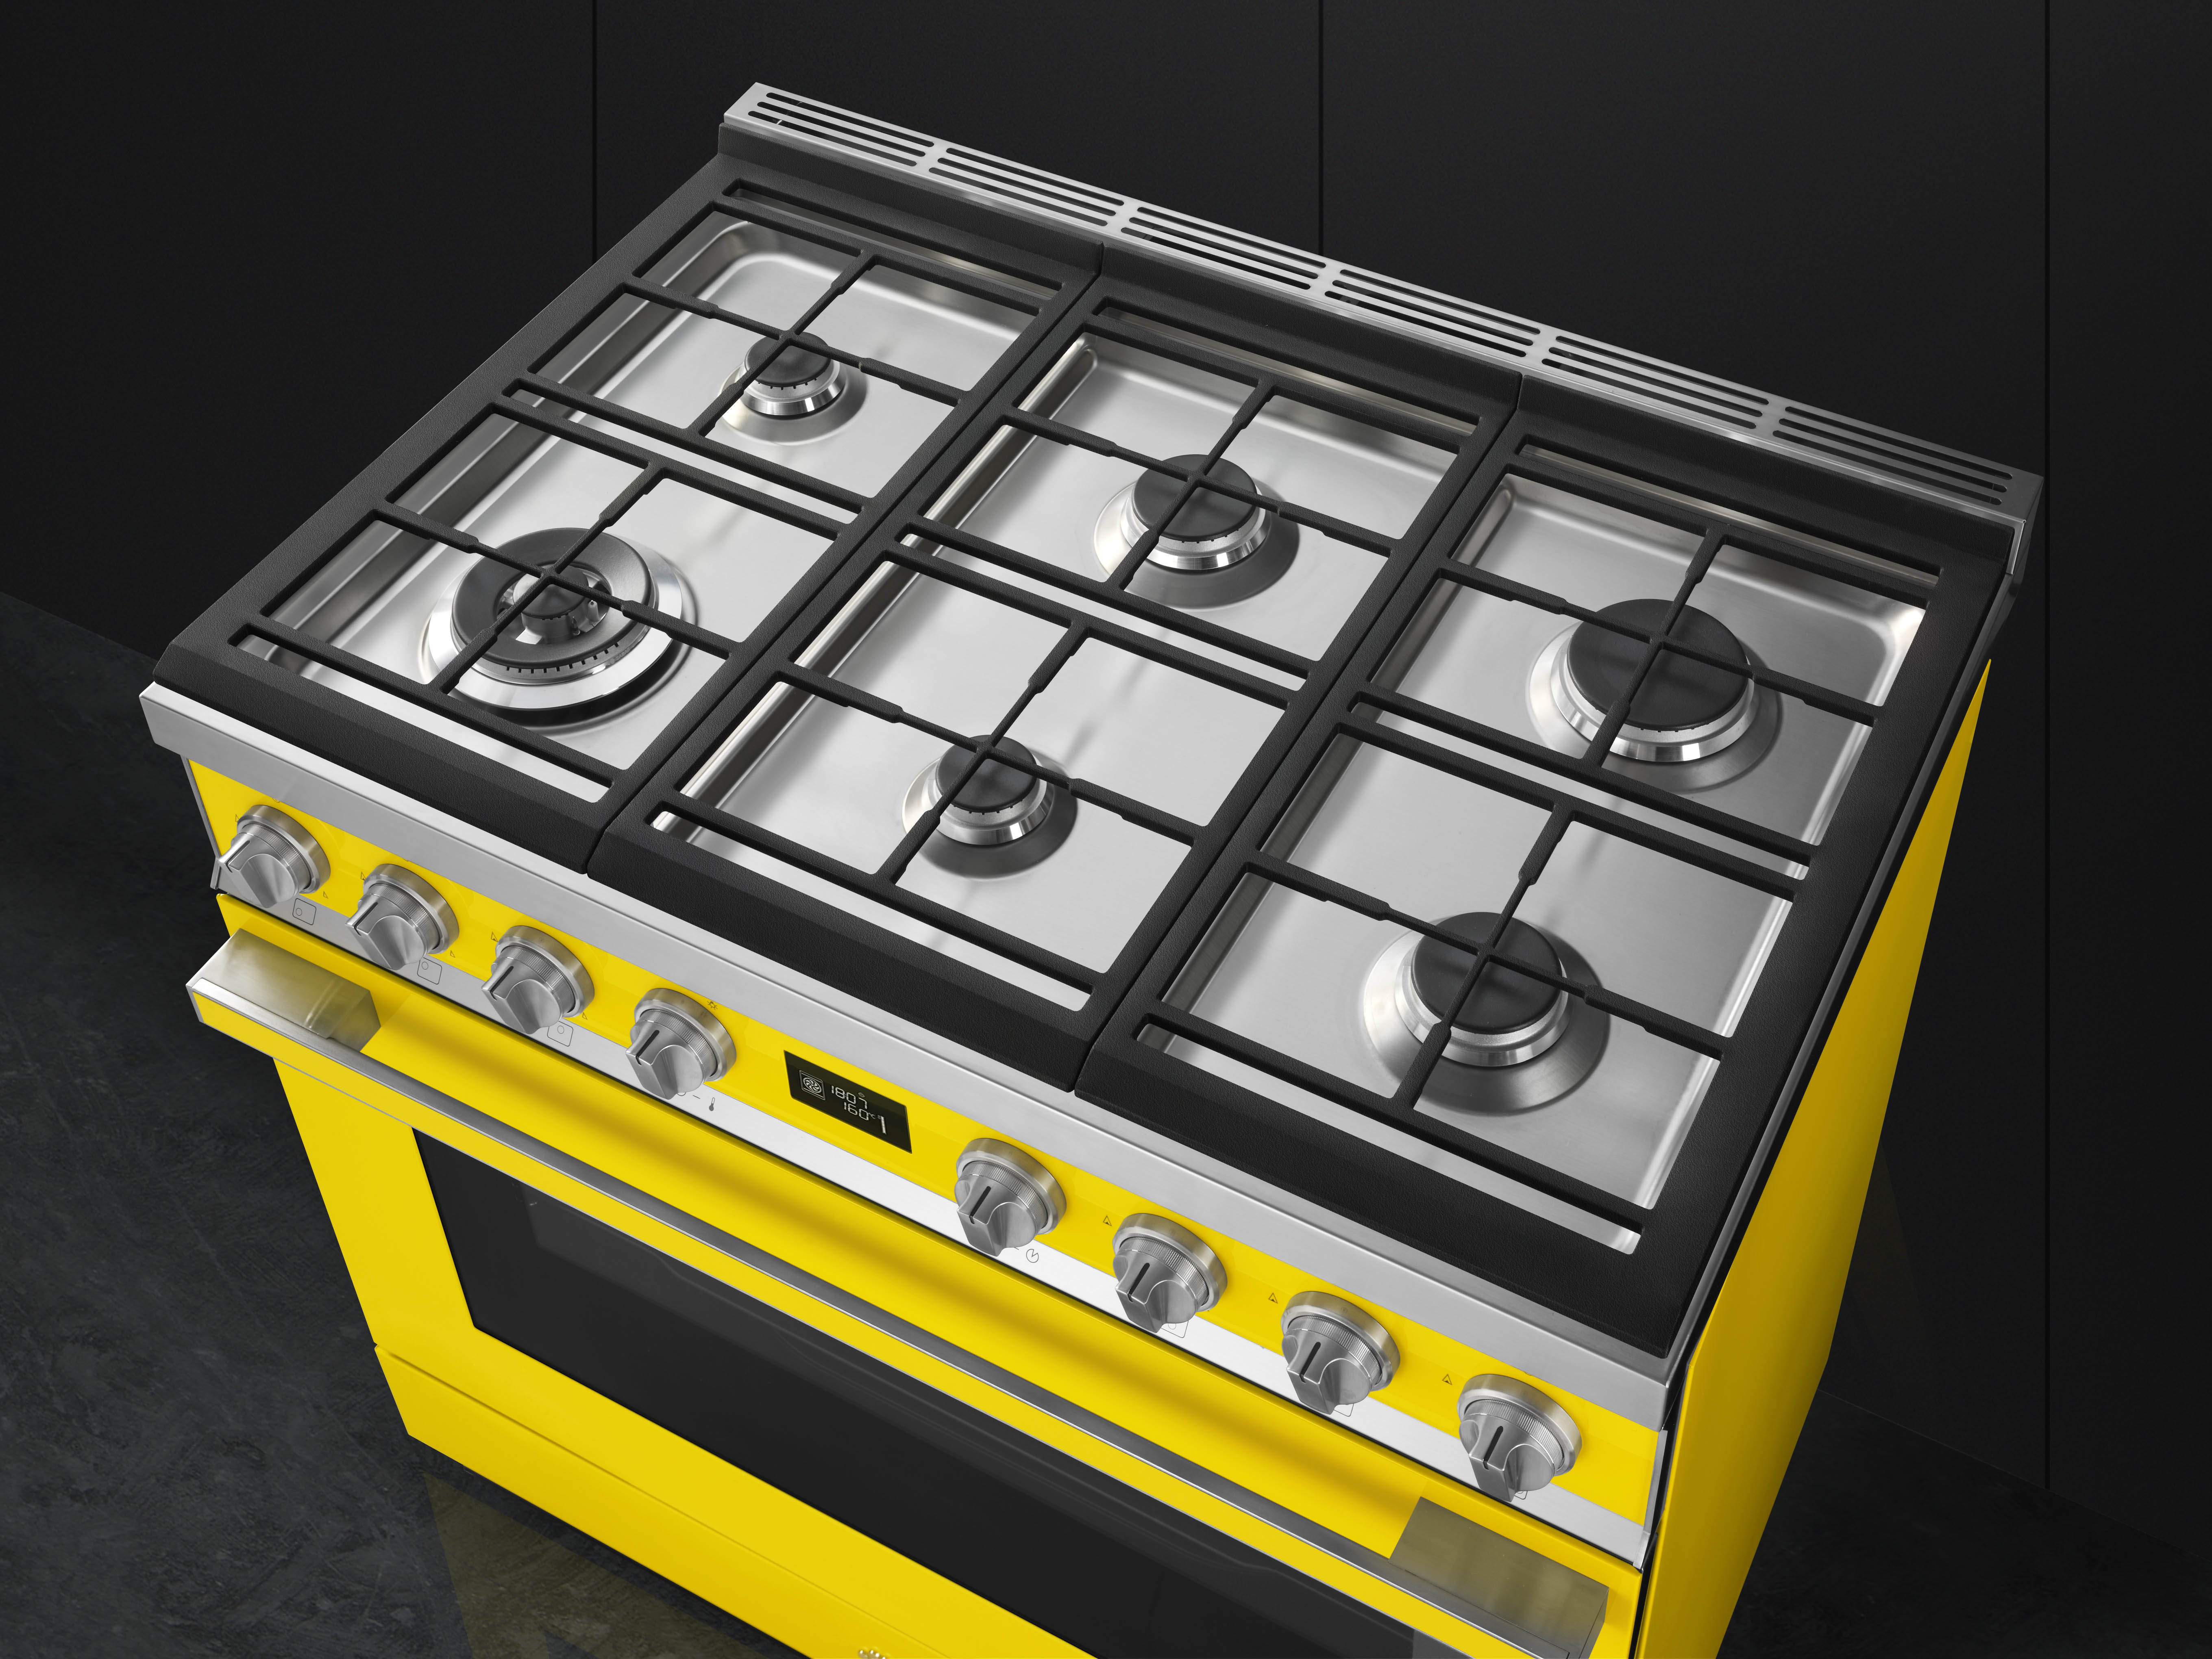 Kitchen appliances different colors - Smeg Portofino Is Inspired By The Colors Of The Famous Ligurian Village And Is Designed To Give Character To The Kitchen With Its Different Colors